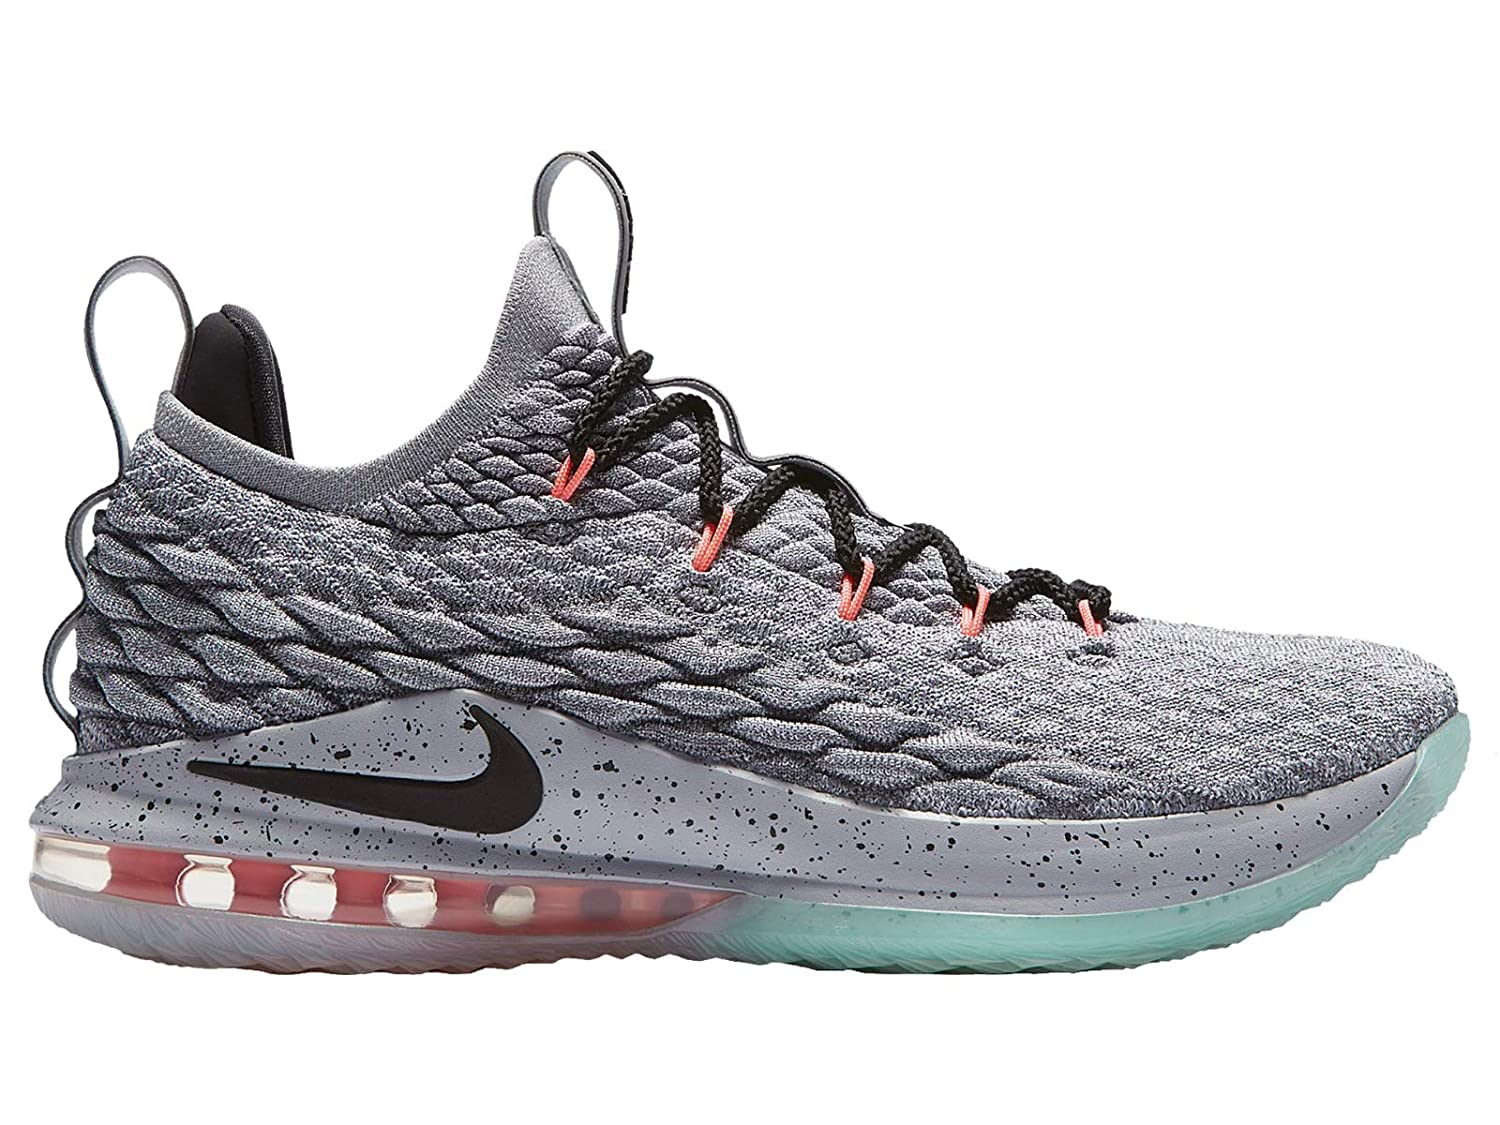 super popular 4742c 4e89c Nike Men's Lebron 15 Low Basketball Shoes (Grey/Black/Teal, 11.5 M US)